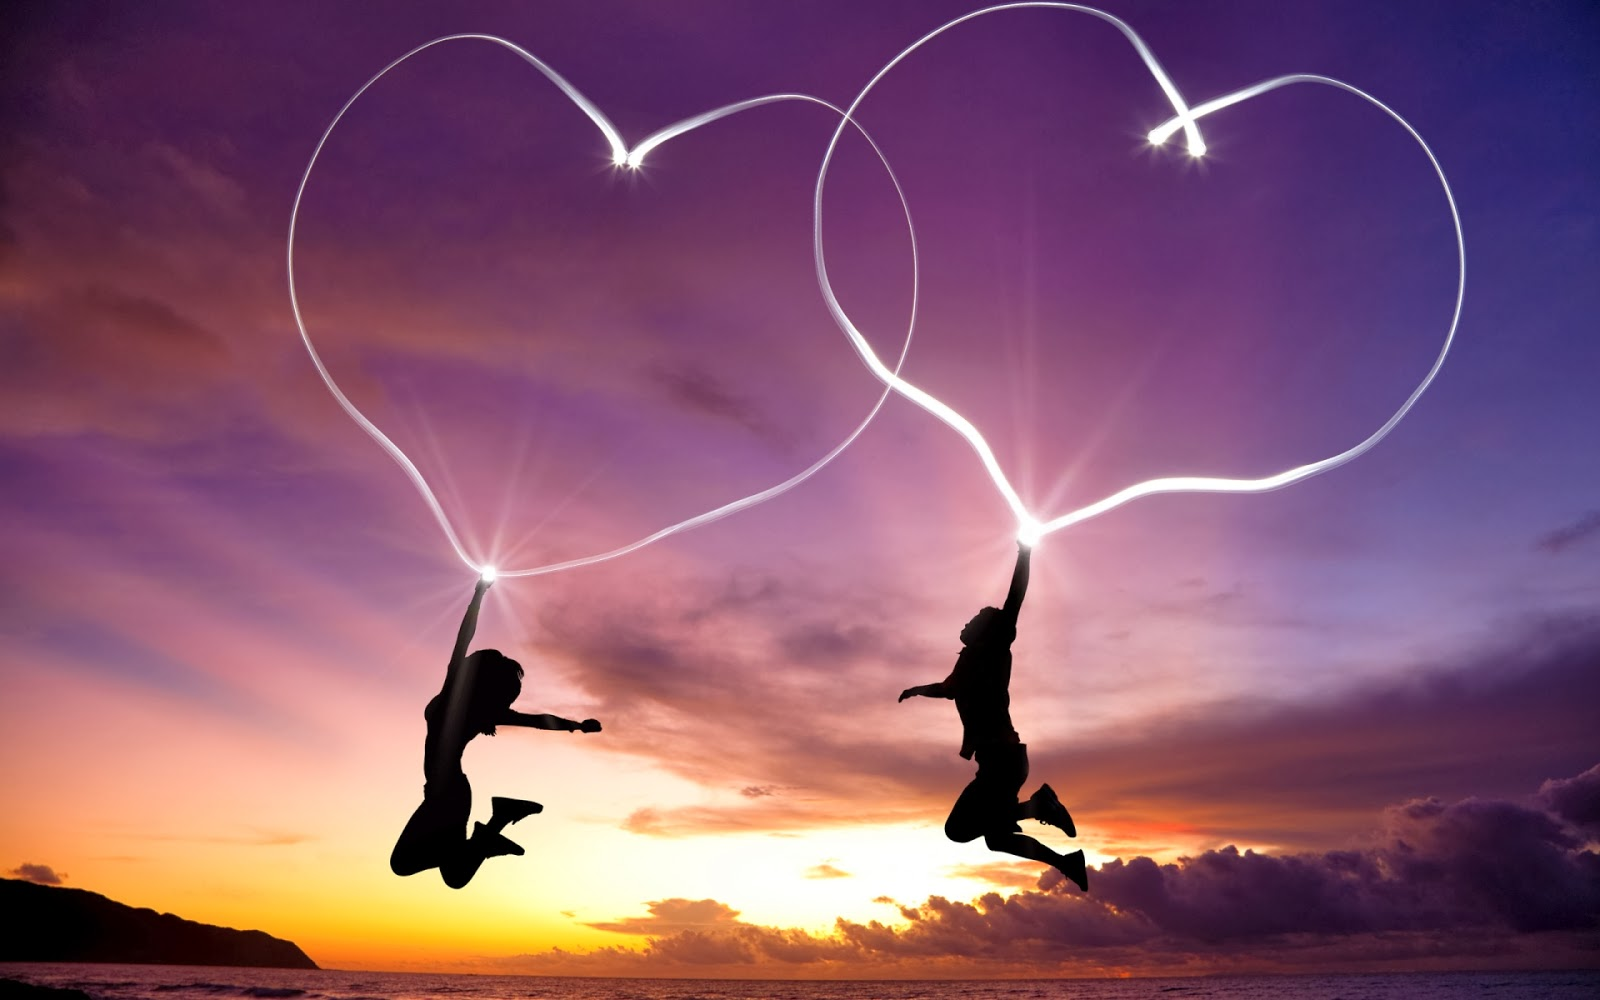 love-couple-enjoy-evening-sunset-love-heart-pictures-for-desktop.jpg